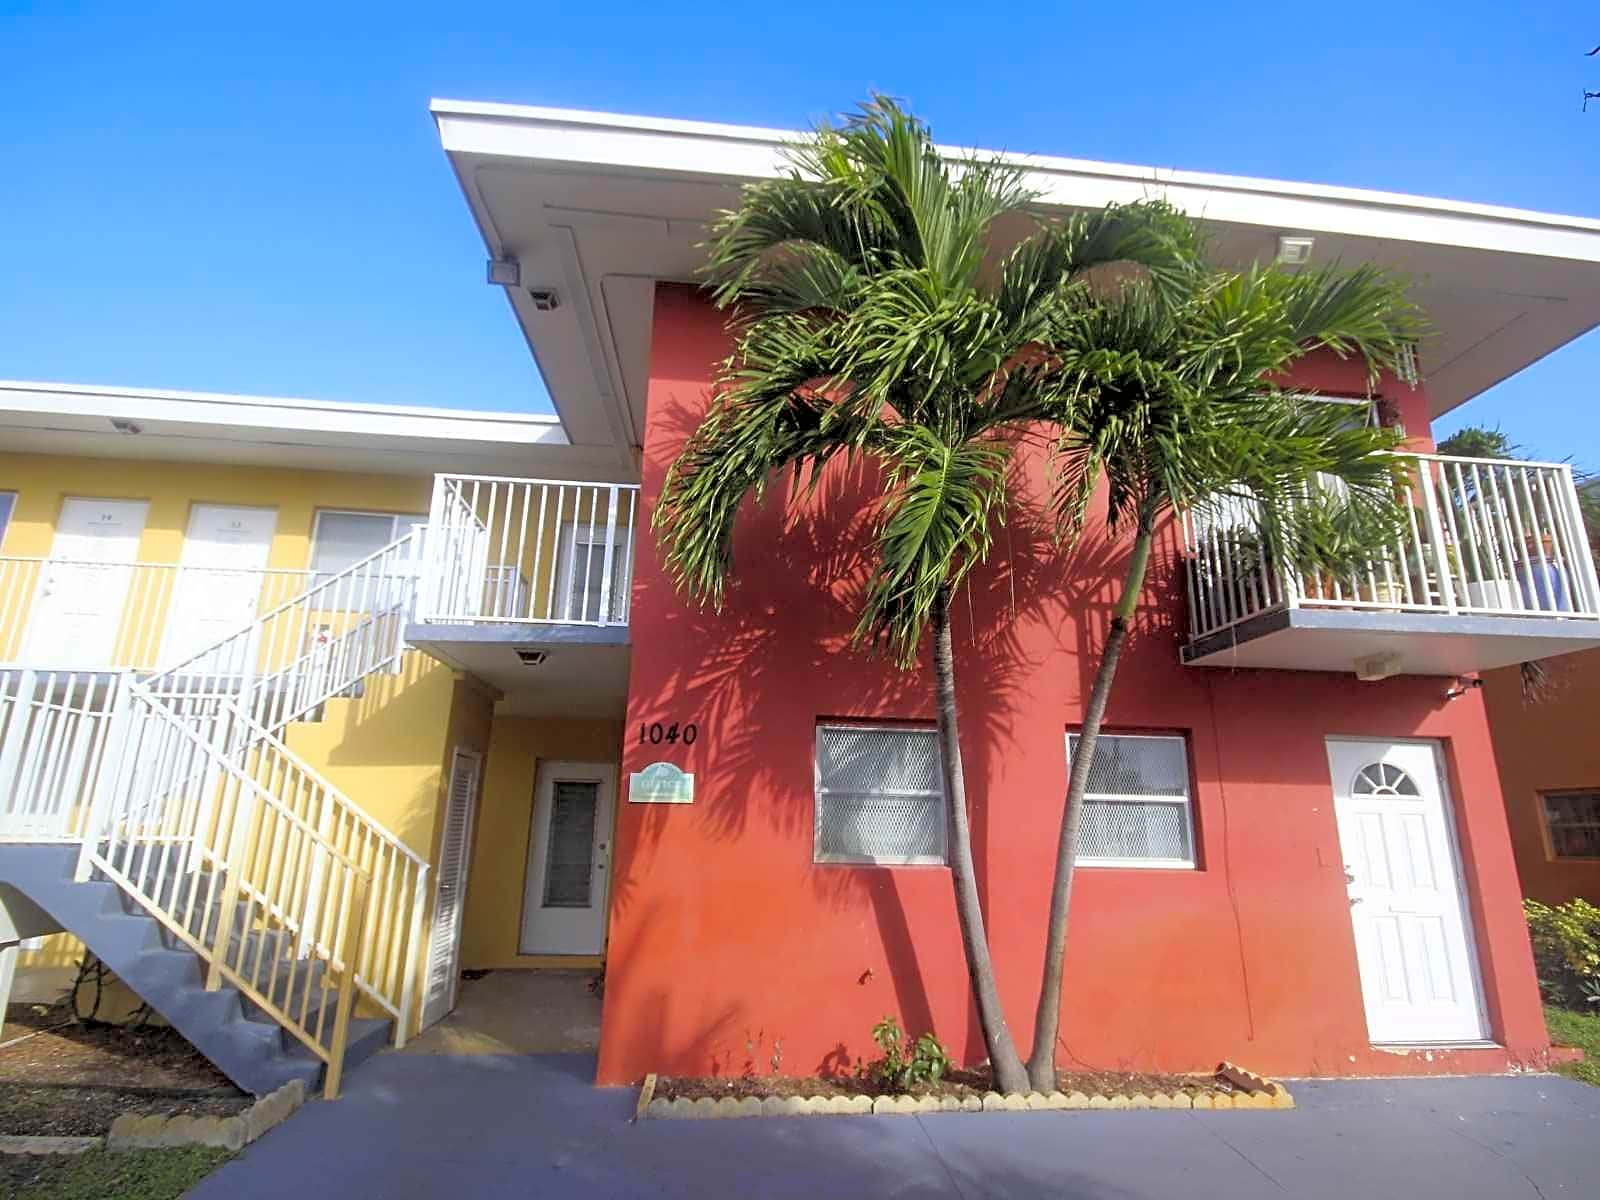 Photo: Fort Lauderdale Apartment for Rent - $800.00 / month; 1 Bd & 1 Ba